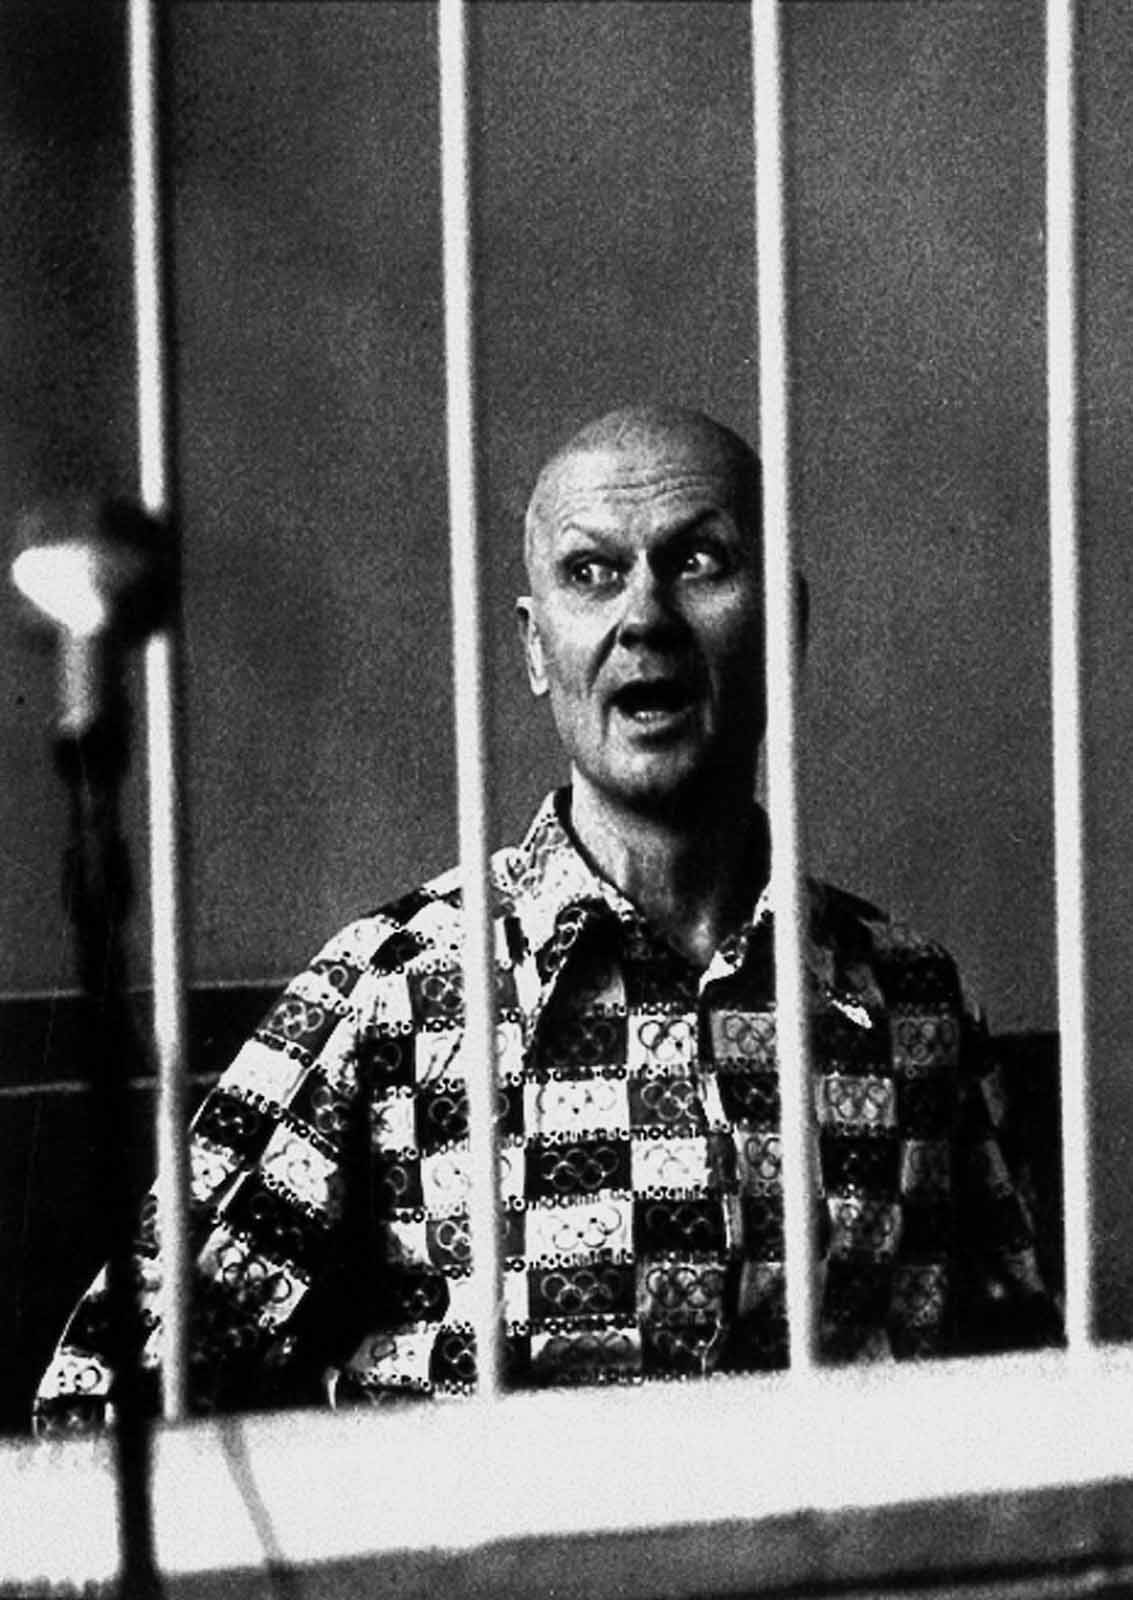 It's almost like looking in a mirror: Andrei Chikatilo was a man with a position of authority. But one wrong move, and suddenly he was a serial killer.